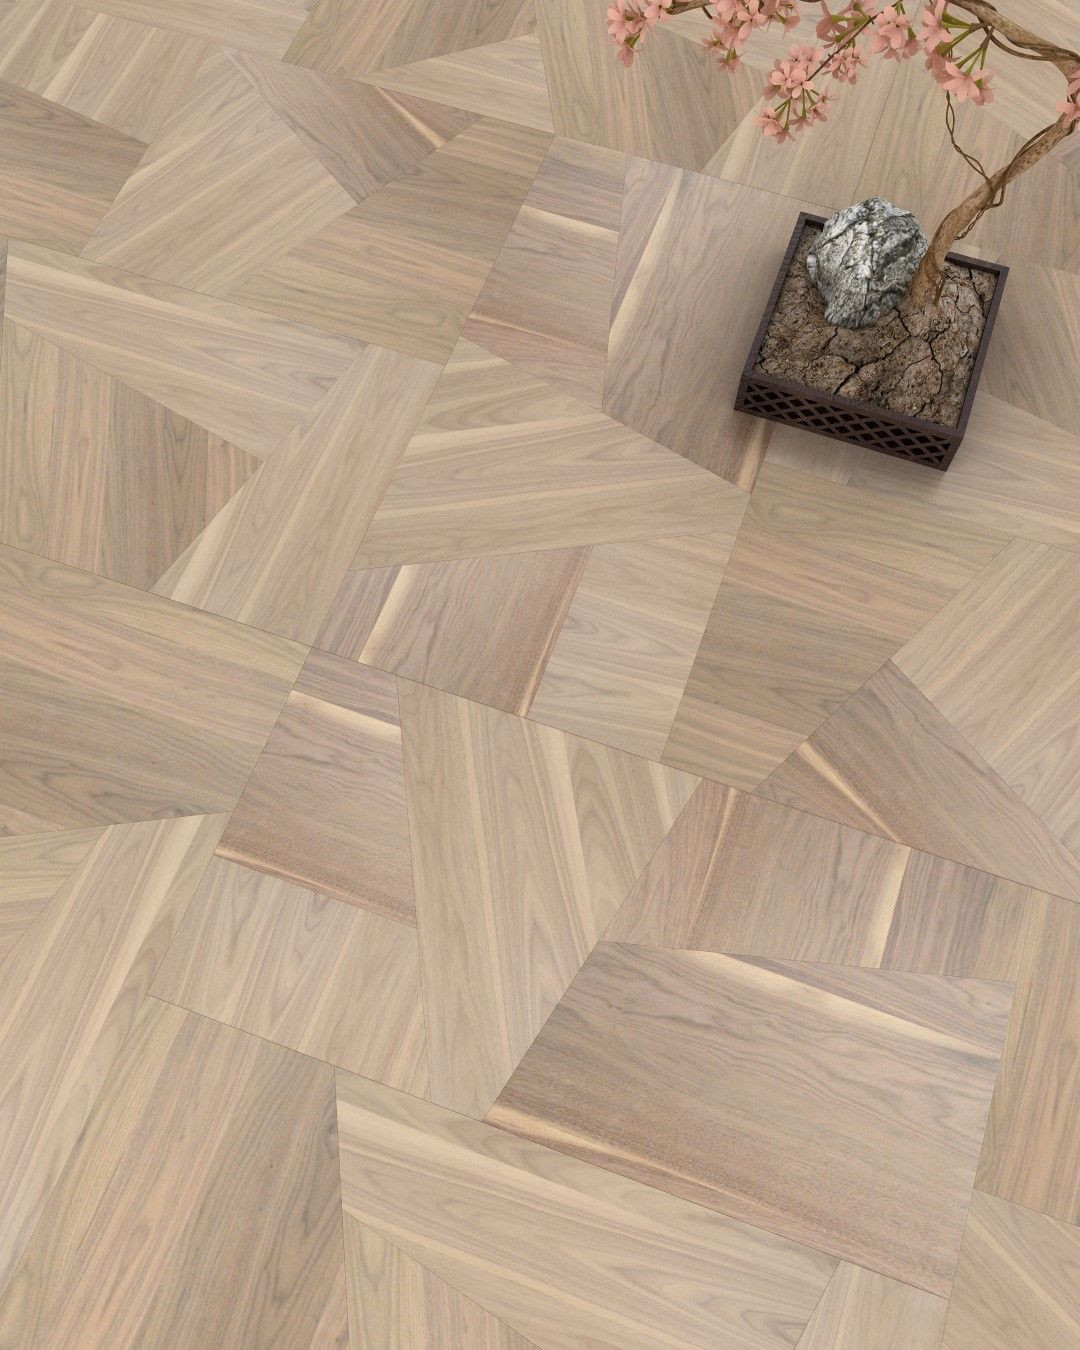 hardwood flooring windsor ontario of trio parquet stp w design trencadis walnut american sbiancato within trio parquet stp w design trencadis walnut american sbiancato 16x1160x580 made in spain